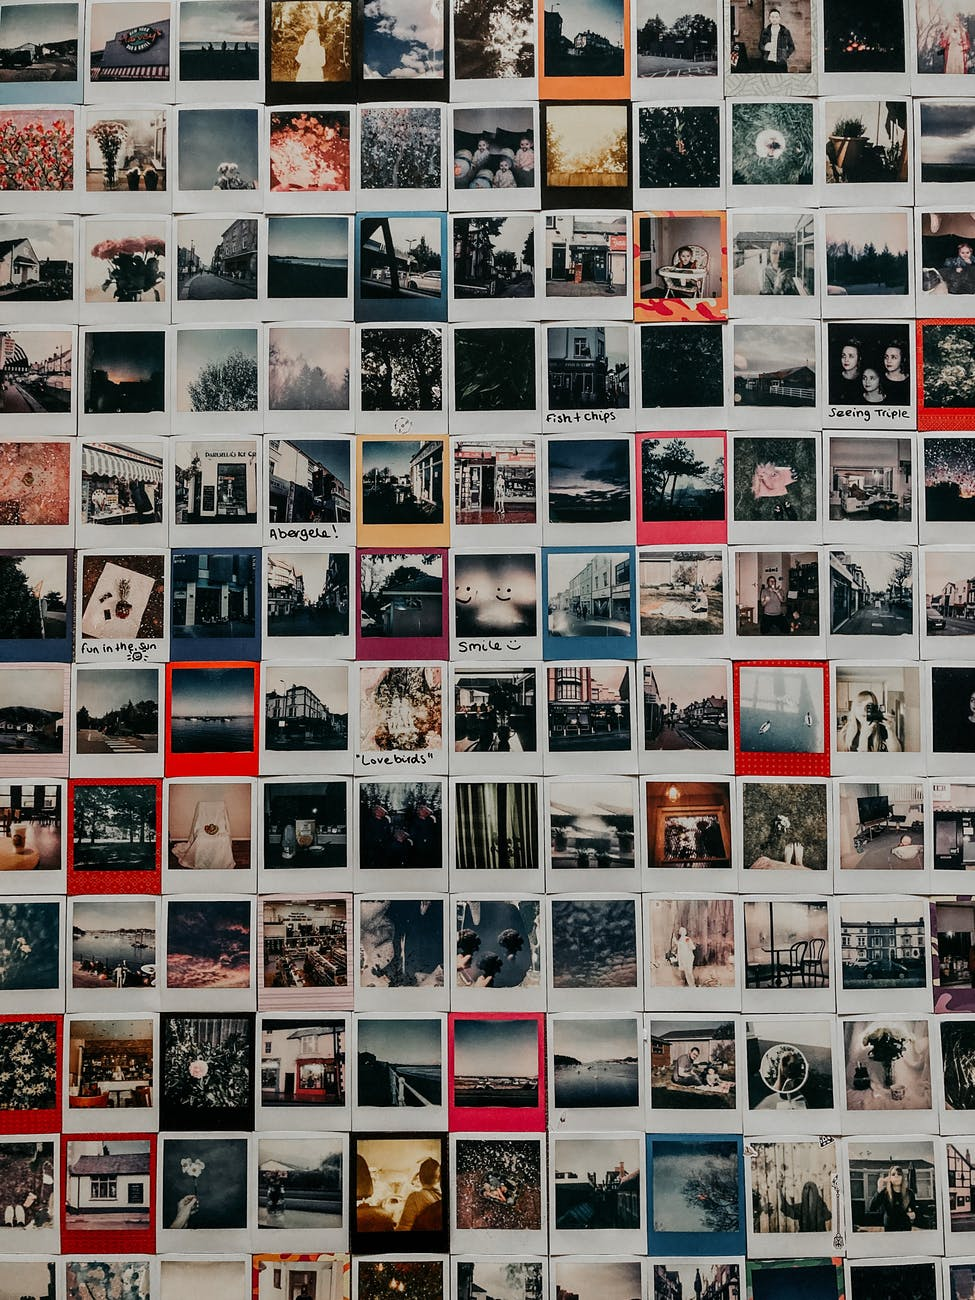 collection of old instant photos with trips